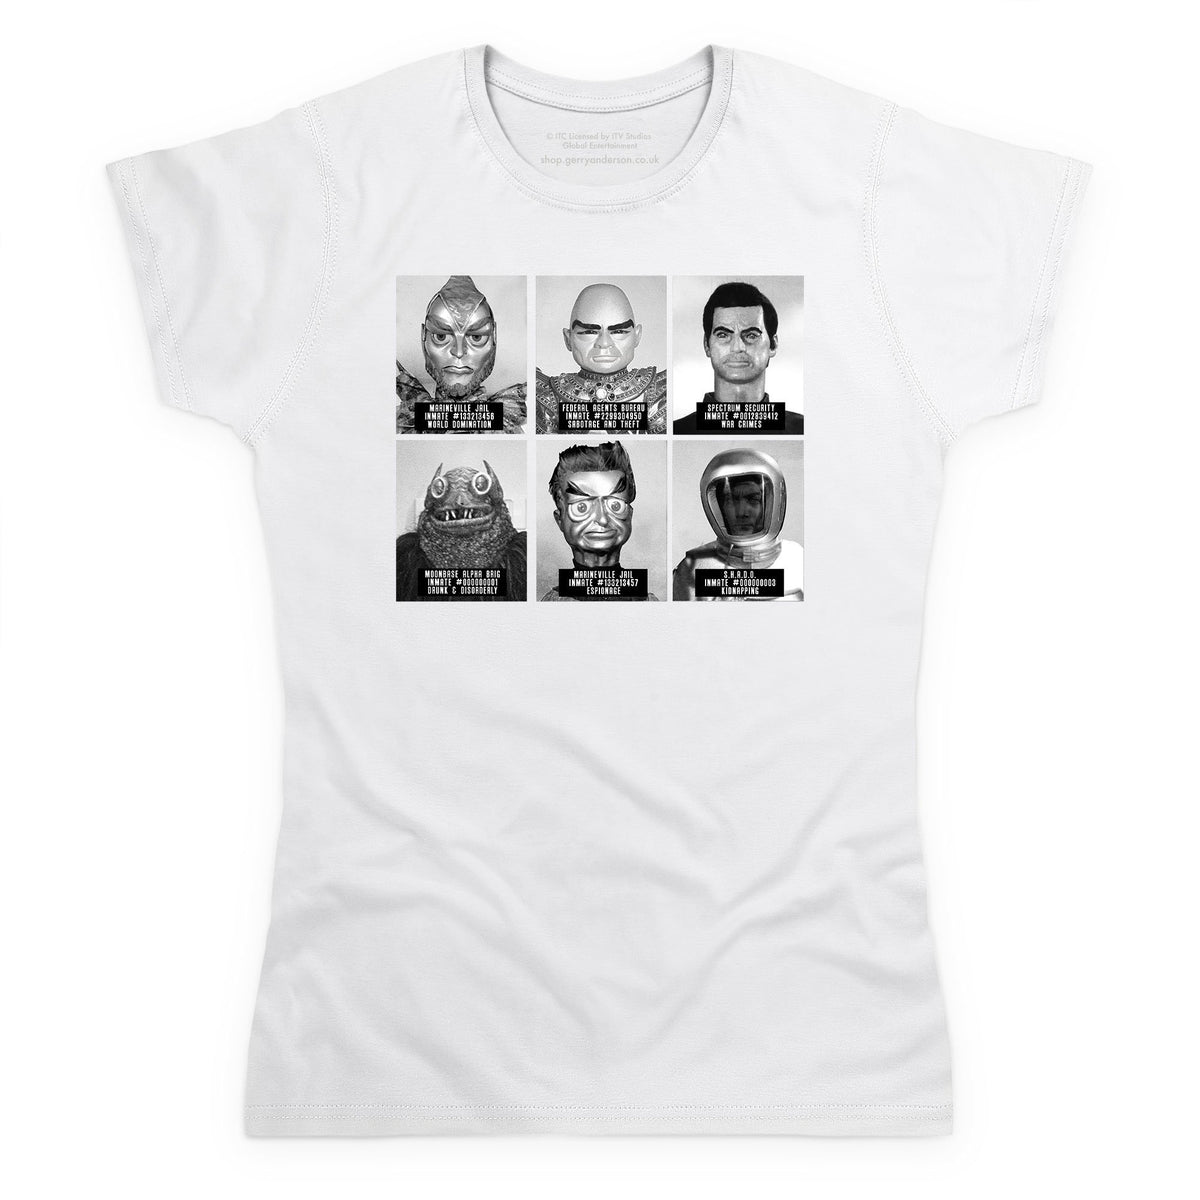 Suspects and Villains Women's White T-shirt [Official & Exclusive] - The Gerry Anderson Store